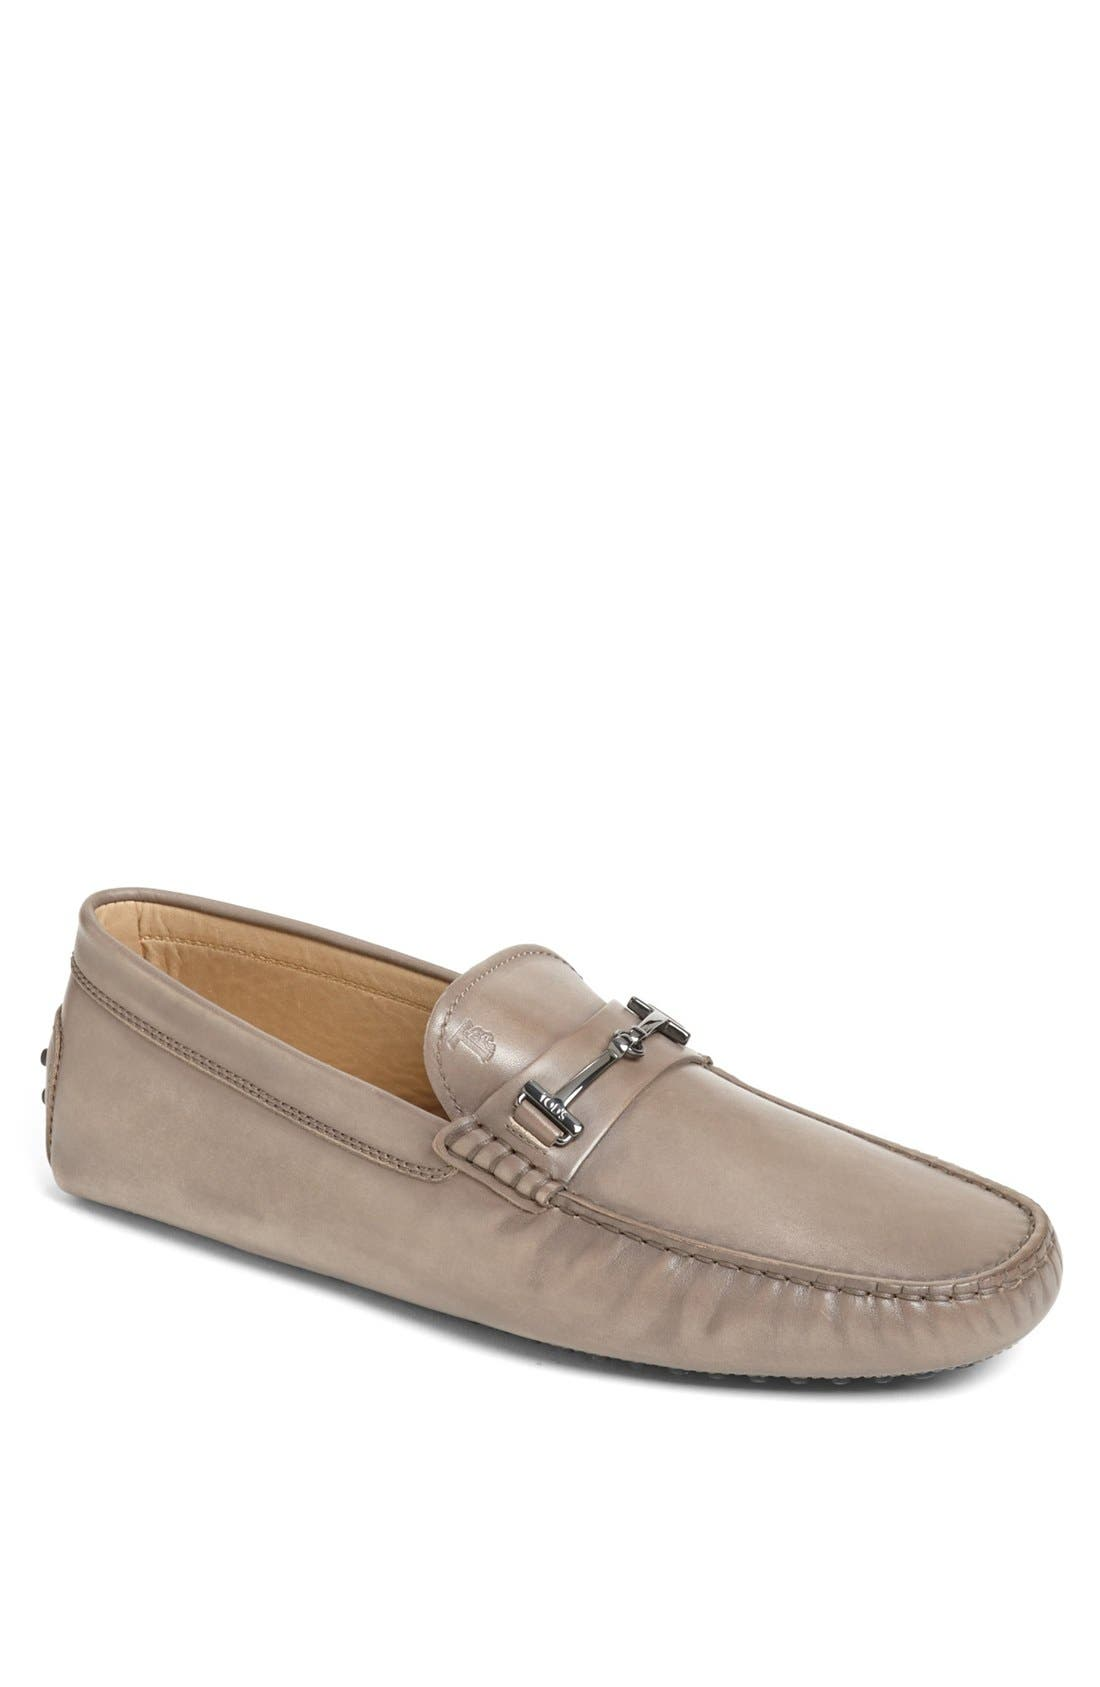 Alternate Image 1 Selected - Tod's 'Double T Bit' Driving Shoe